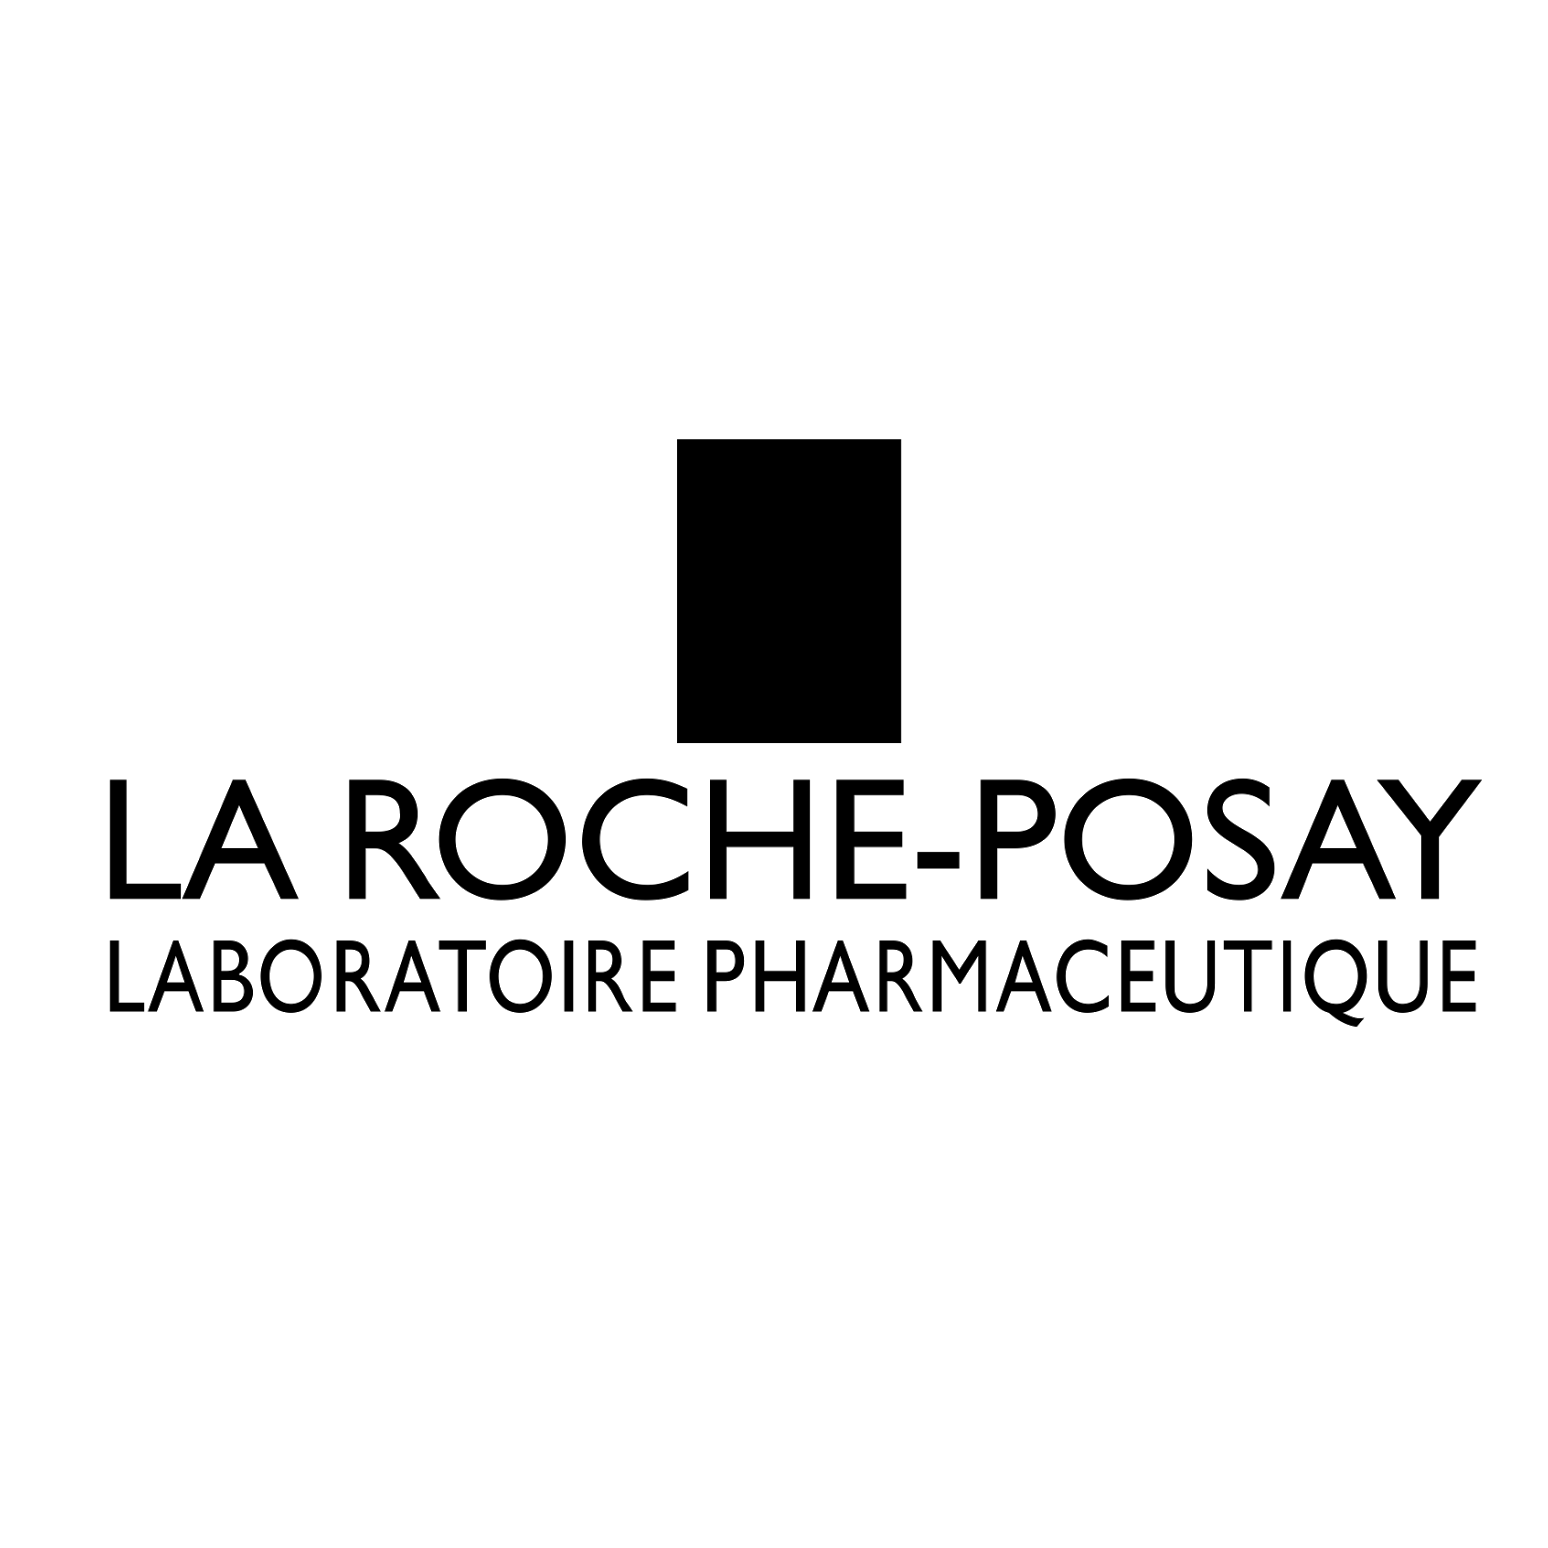 La Roche-Posay coupons and codes